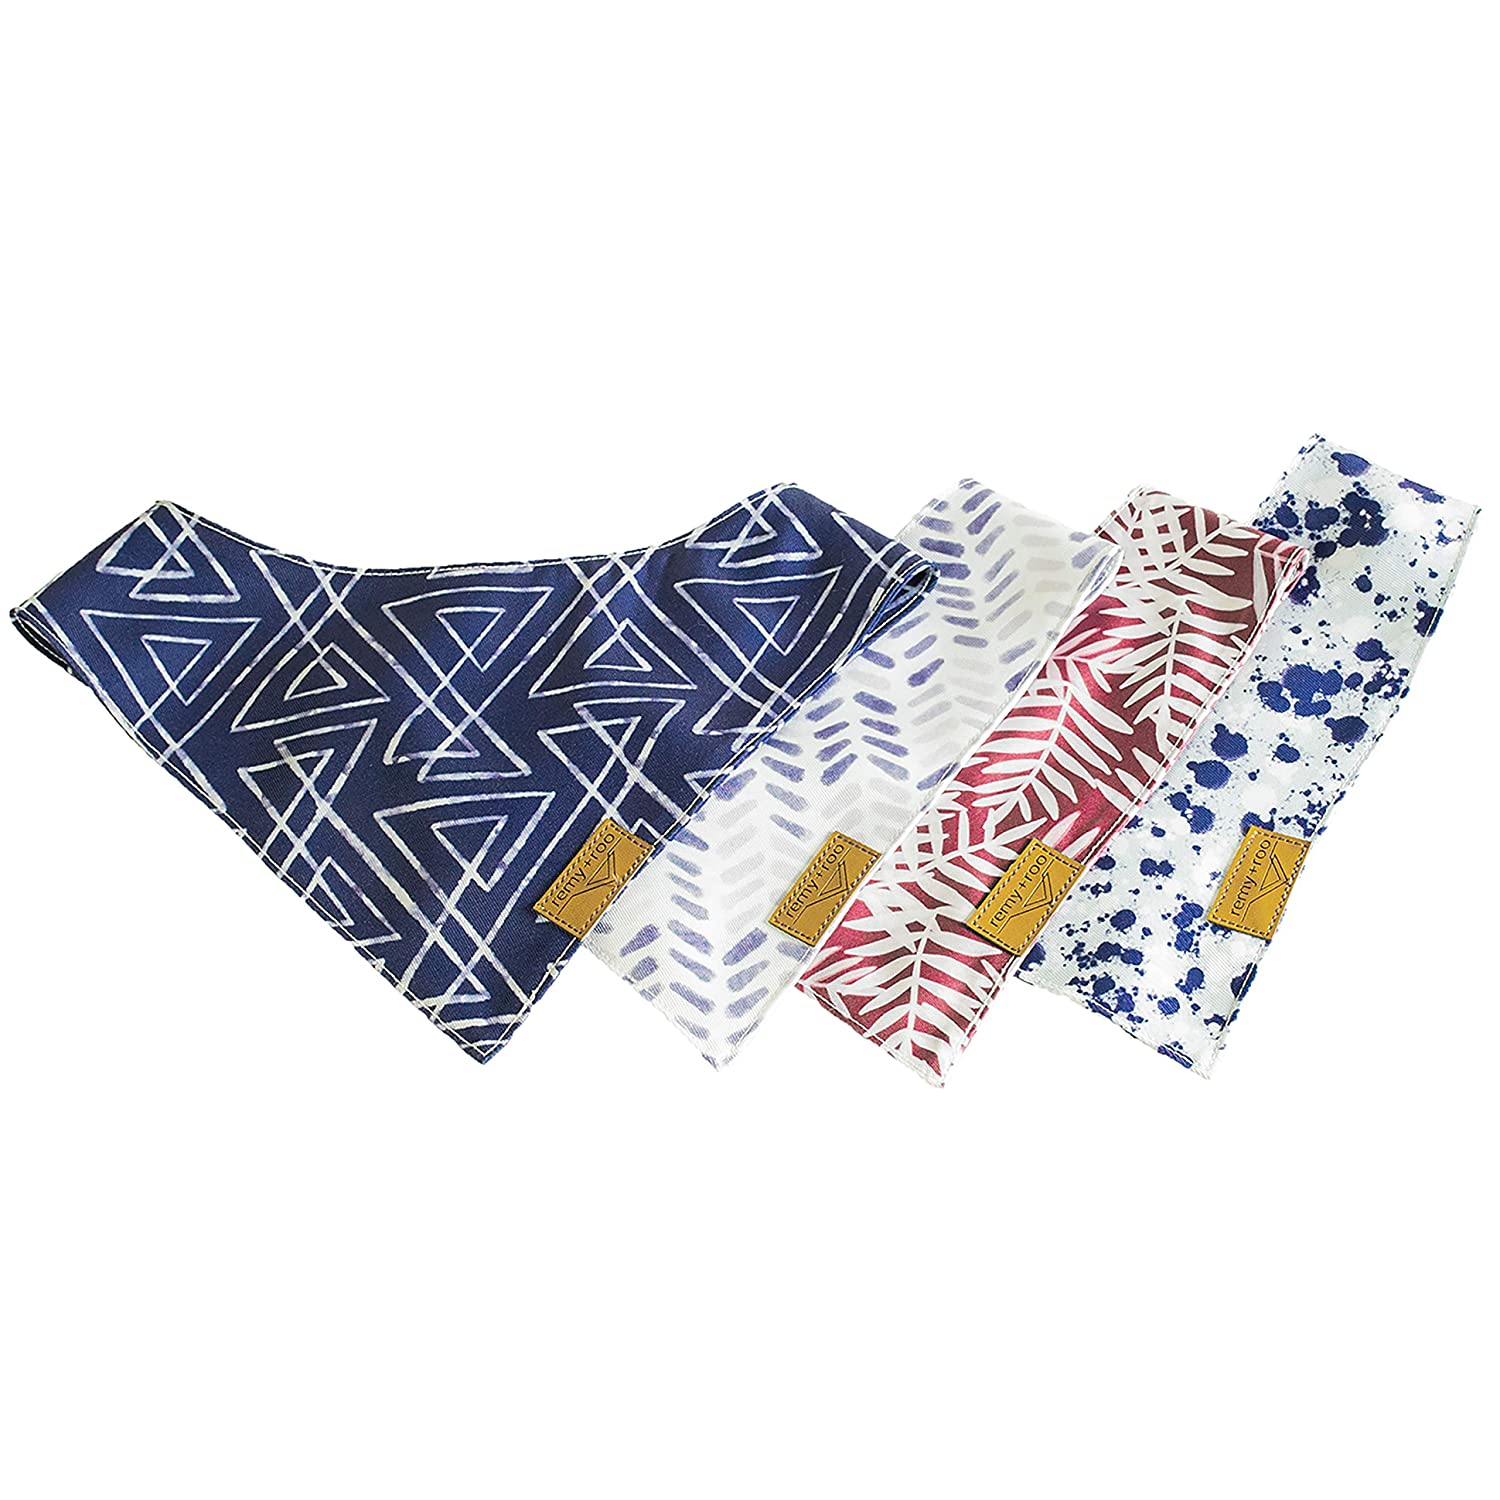 Small to Large The Classic Unique Adjustable Design for Any Size Pet Remy+Roo Dog Bandanas 4 Pack Premium Durable Fabric